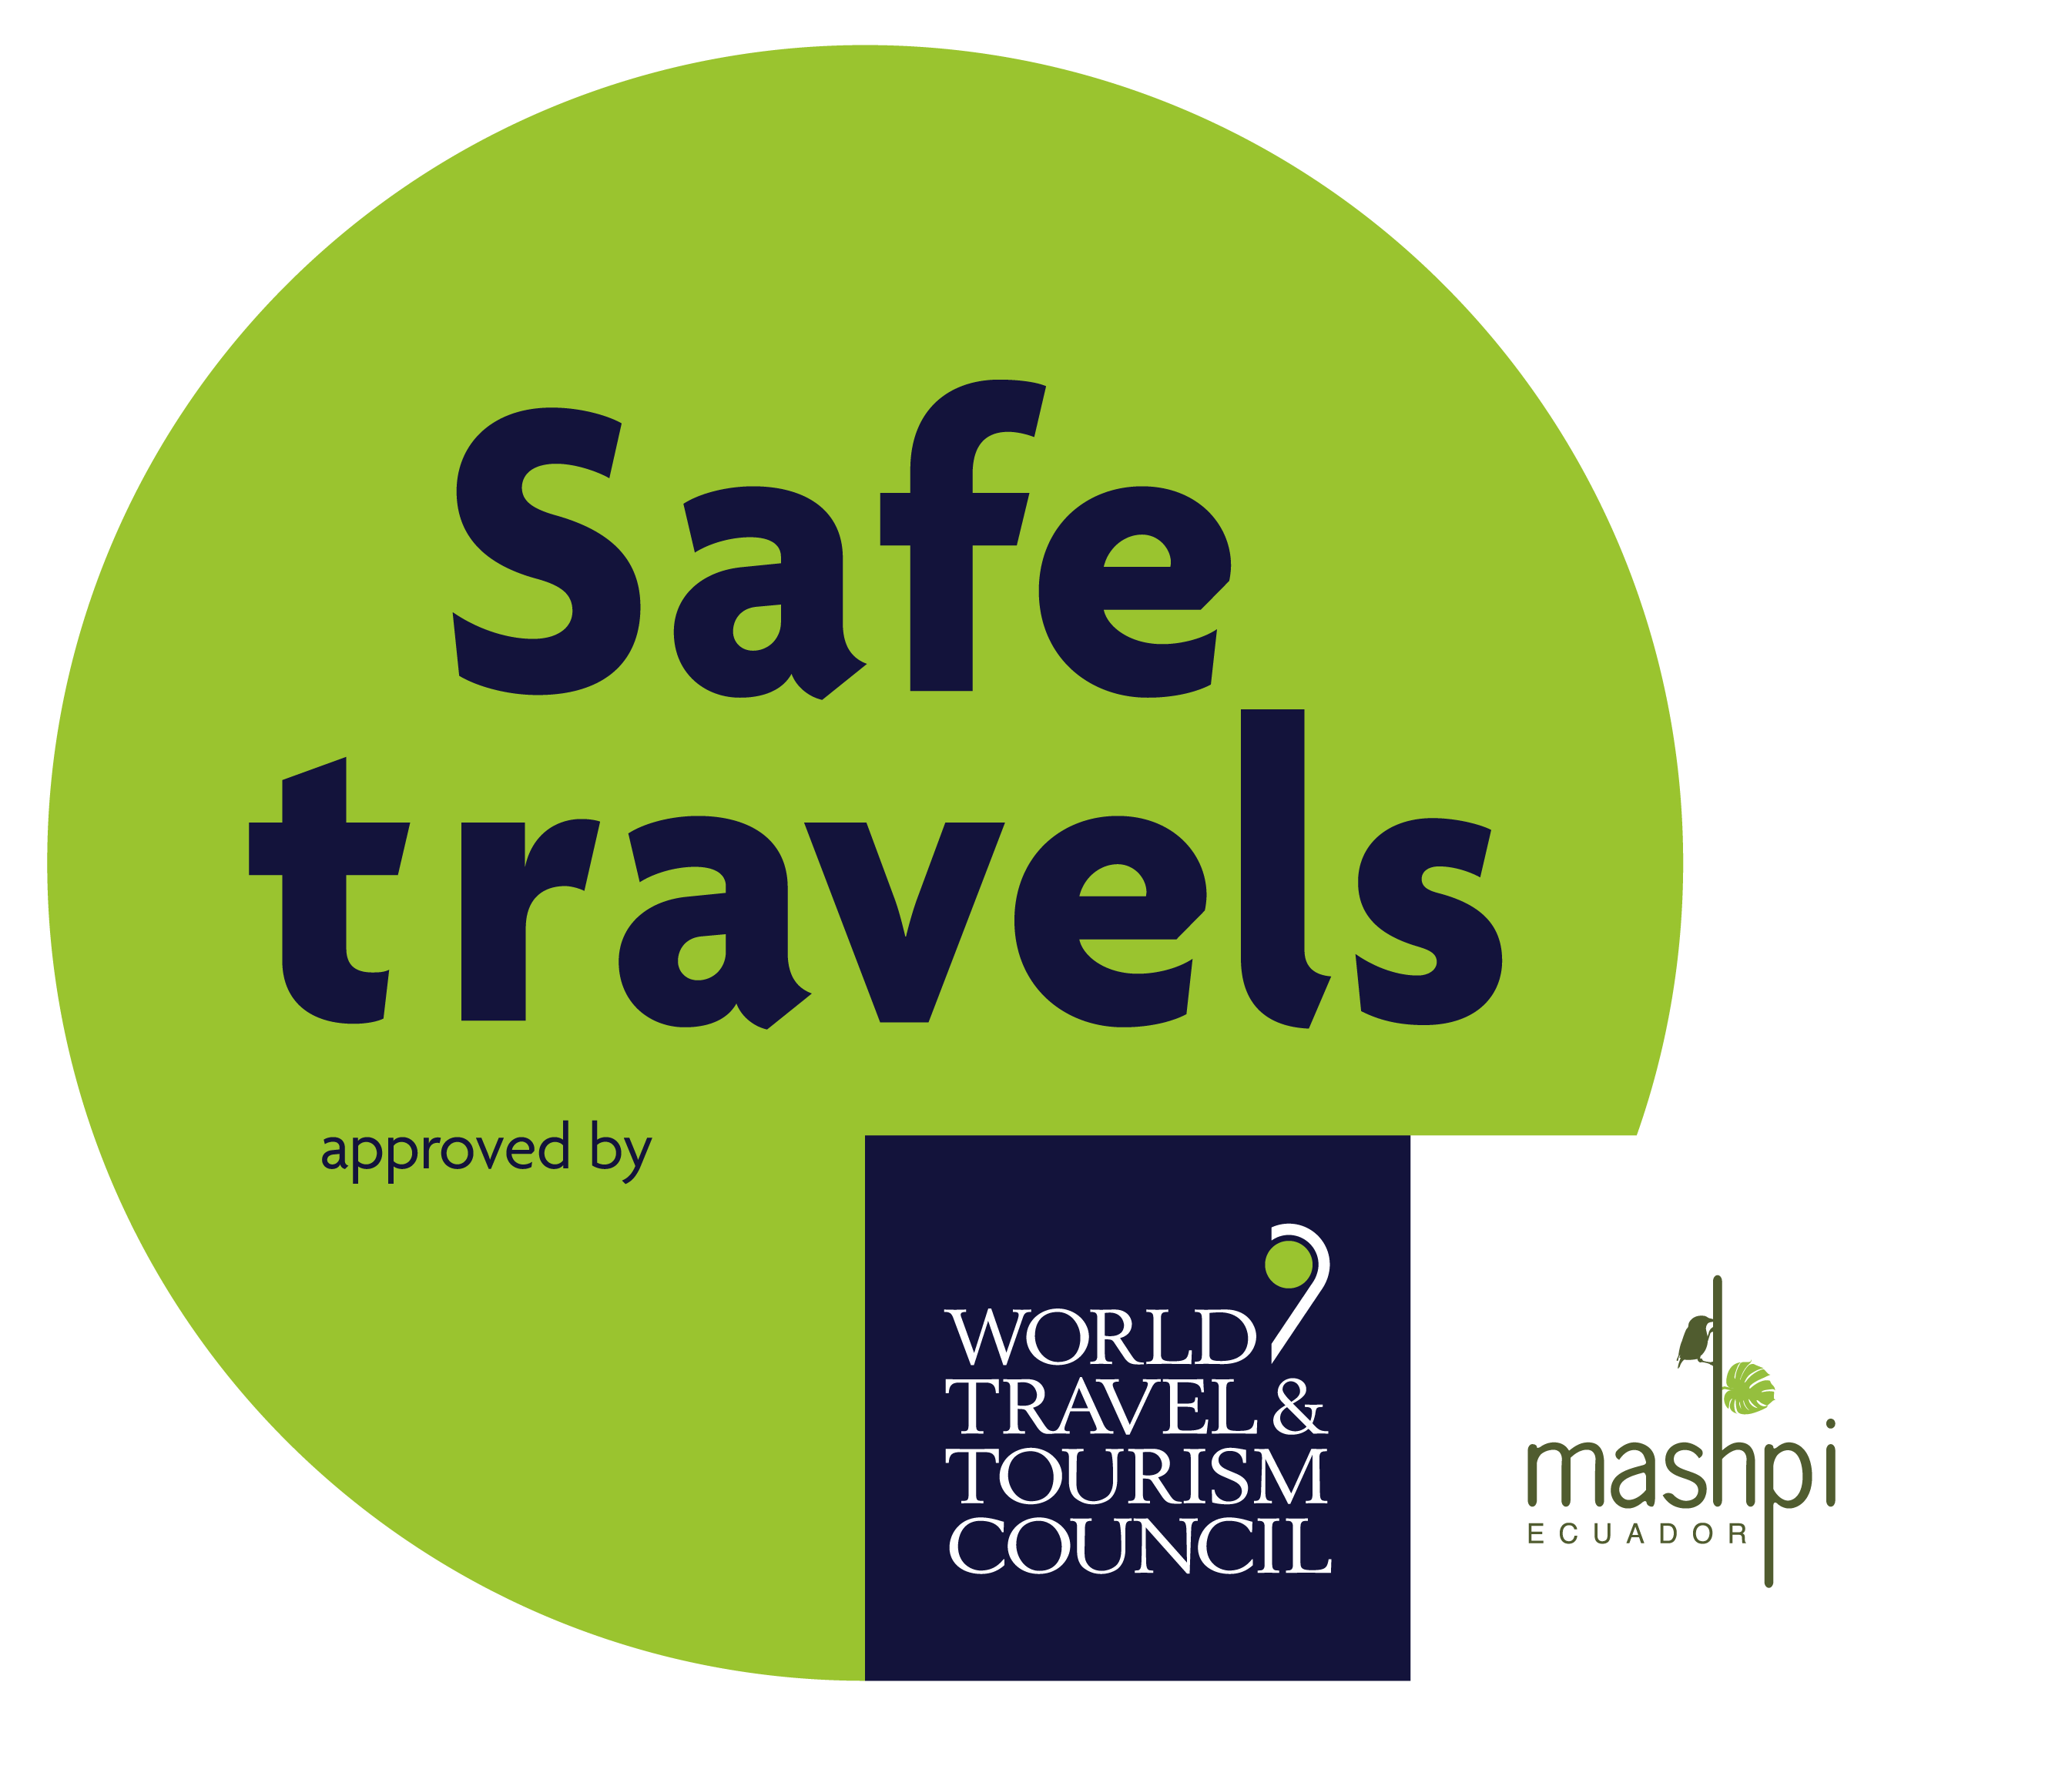 SafeTravels Mashpilodge